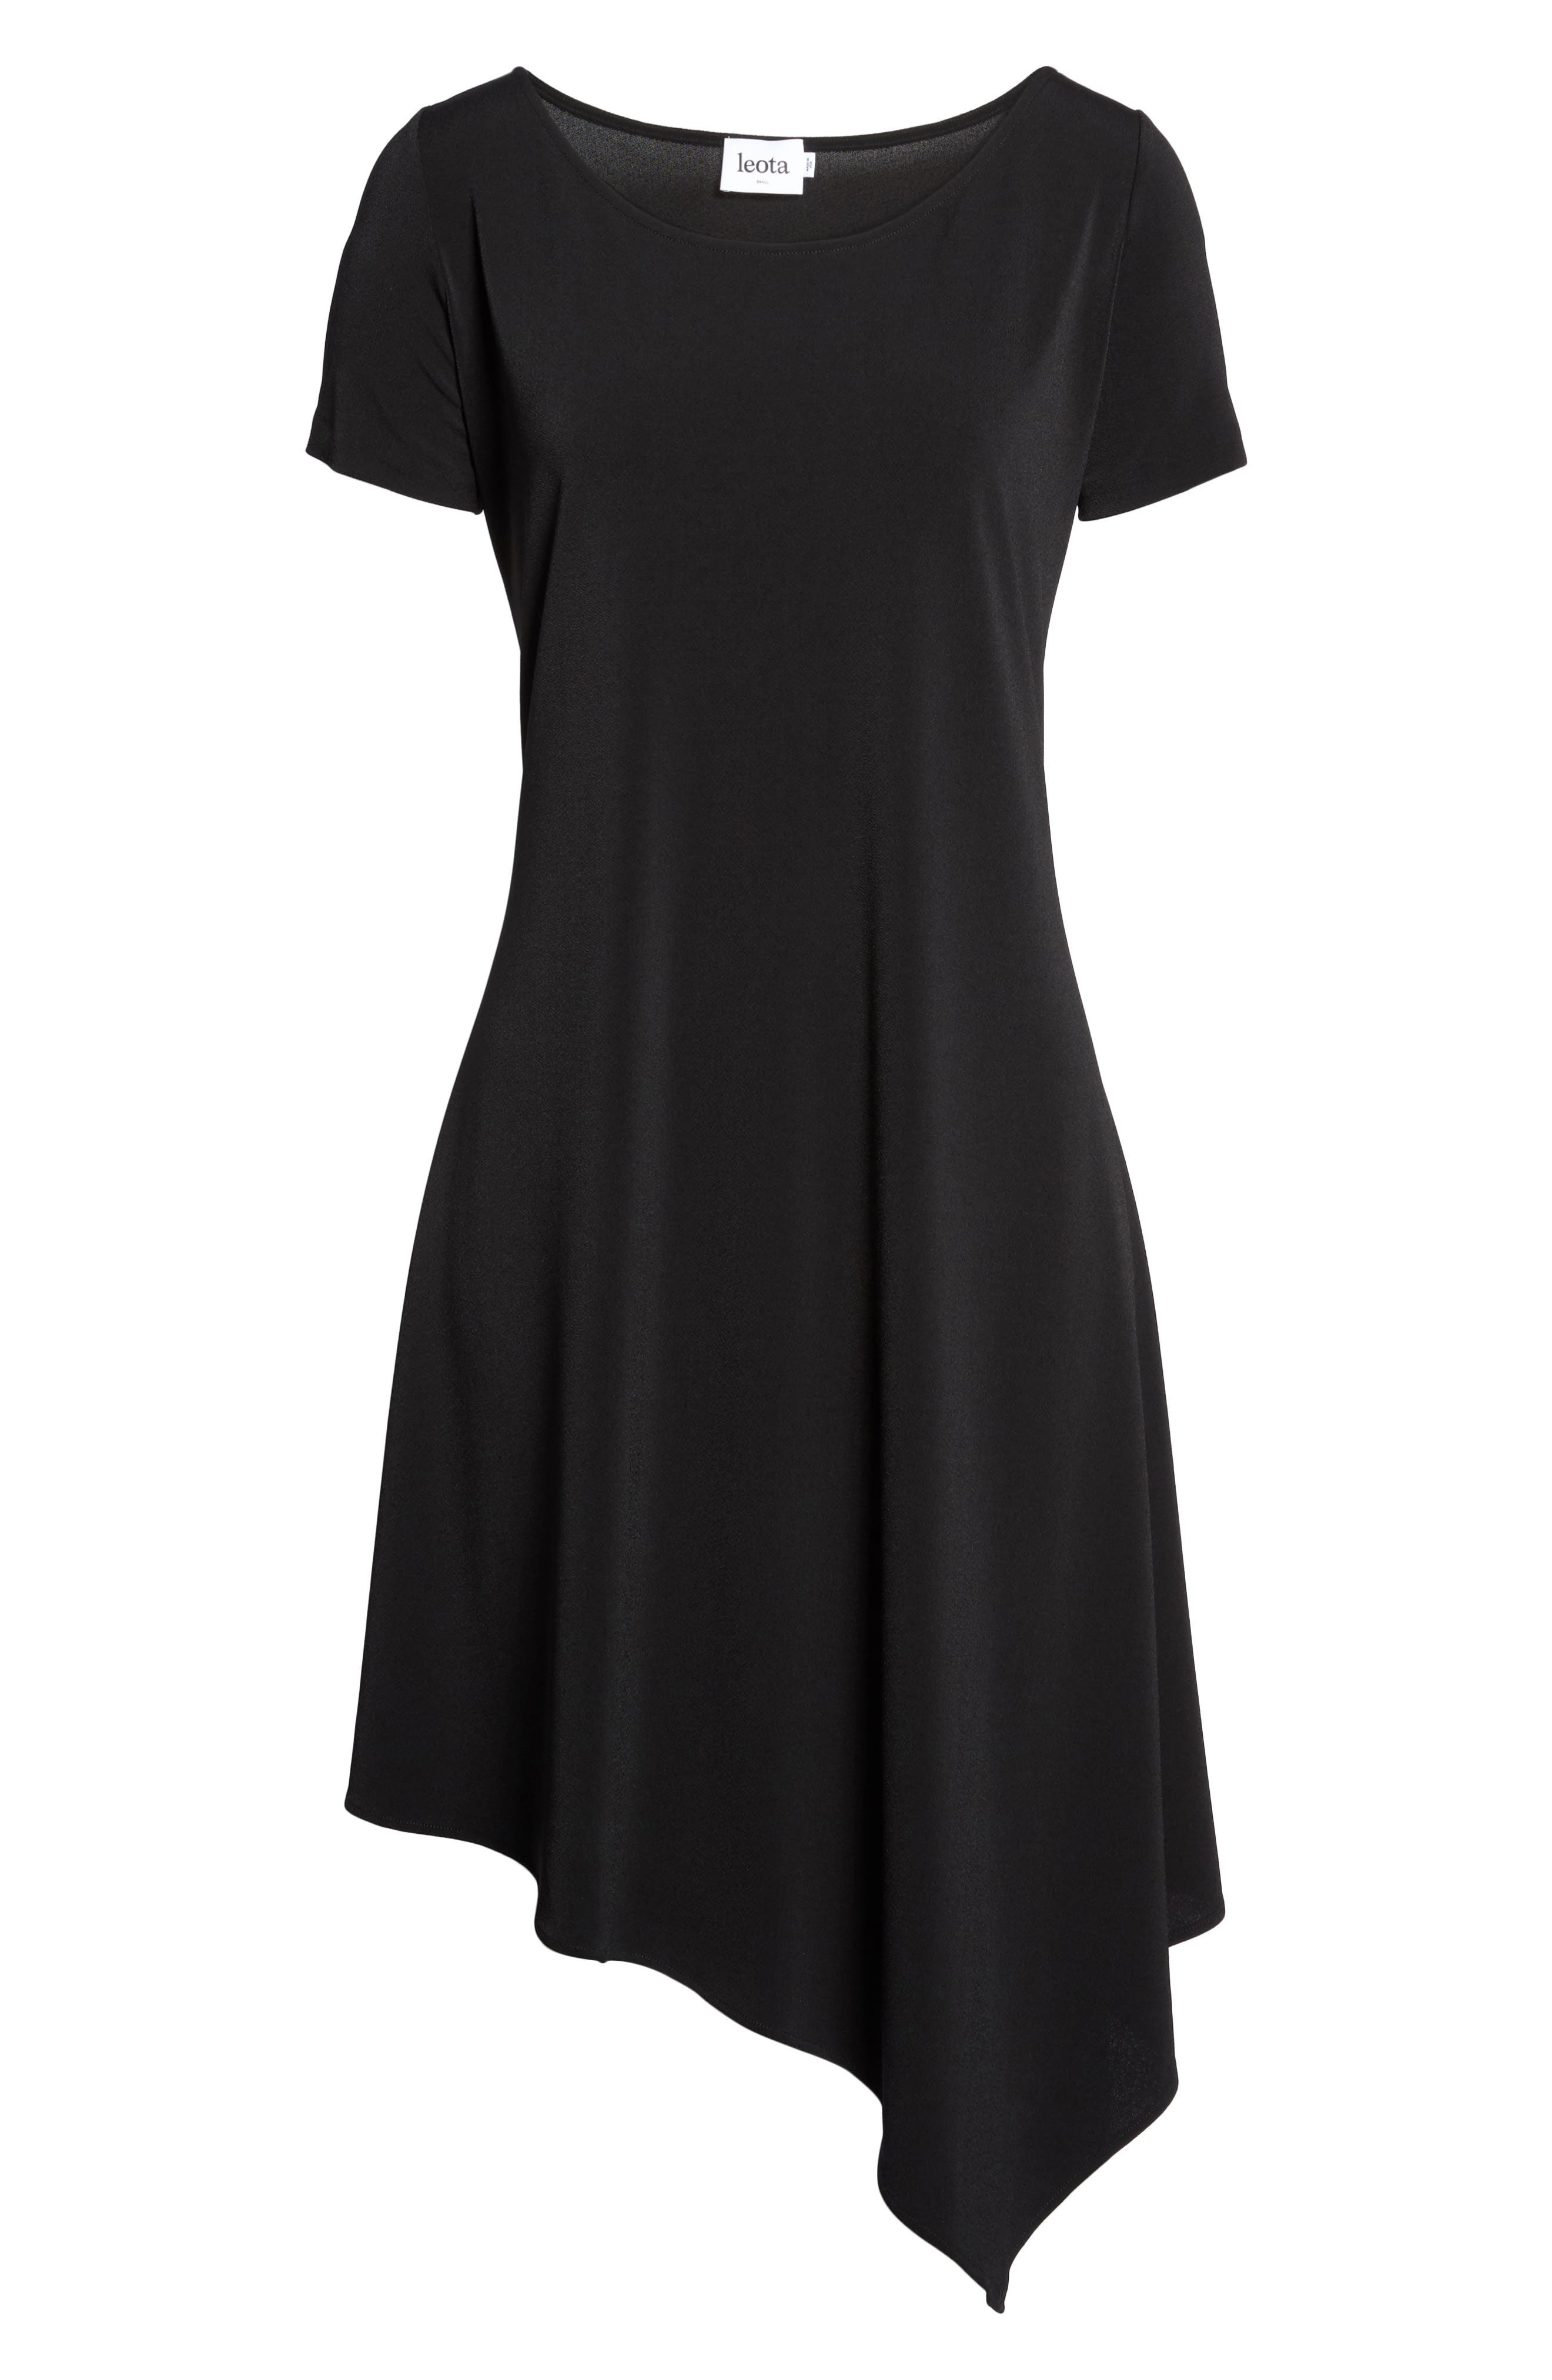 Darien Asymmetrical Dress,                             Alternate thumbnail 6, color,                             Black Crepe